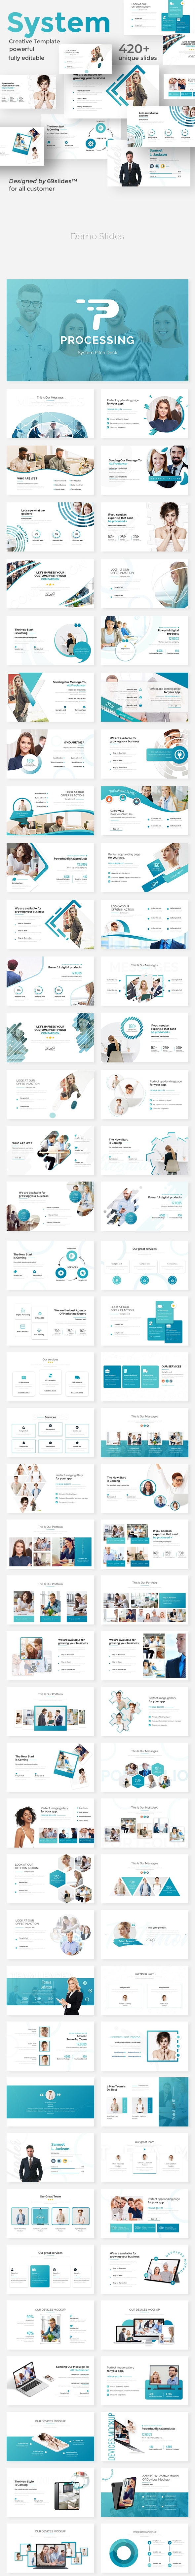 Processing System Google Slide Pitch Deck Template - Google Slides Presentation Templates